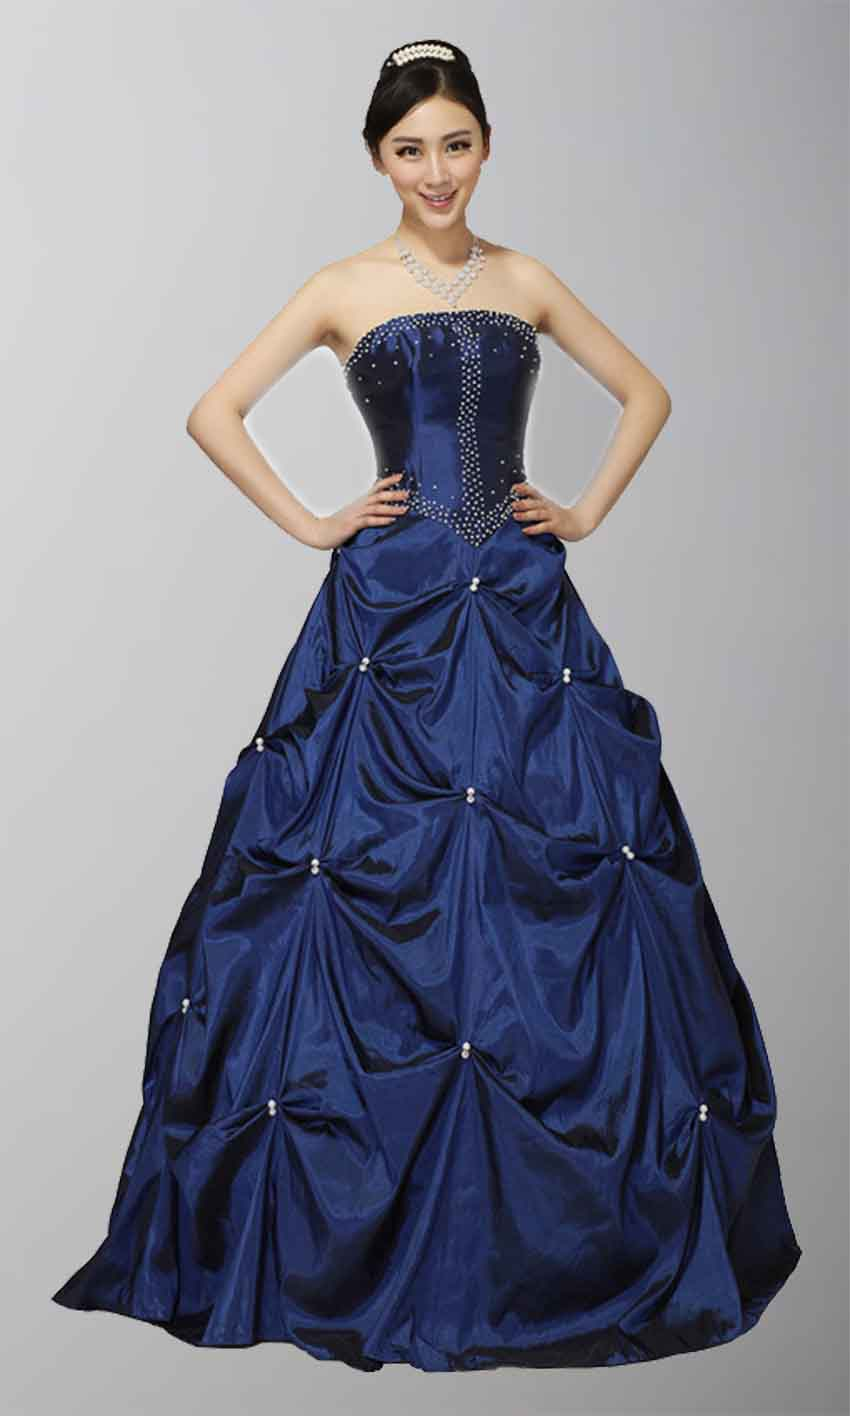 Deep Blue Gothic Style Strapless Prom Dress KSP117 [KSP117] - £118.00 : Cheap Prom Dresses Uk, Bridesmaid Dresses, 2014 Prom & Evening Dresses, Look for cheap elegant prom dresses 2014, cocktail gowns, or dresses for special occasions? kissprom.co.uk offers various bridesmaid dresses, evening dress, free shipping to UK etc.